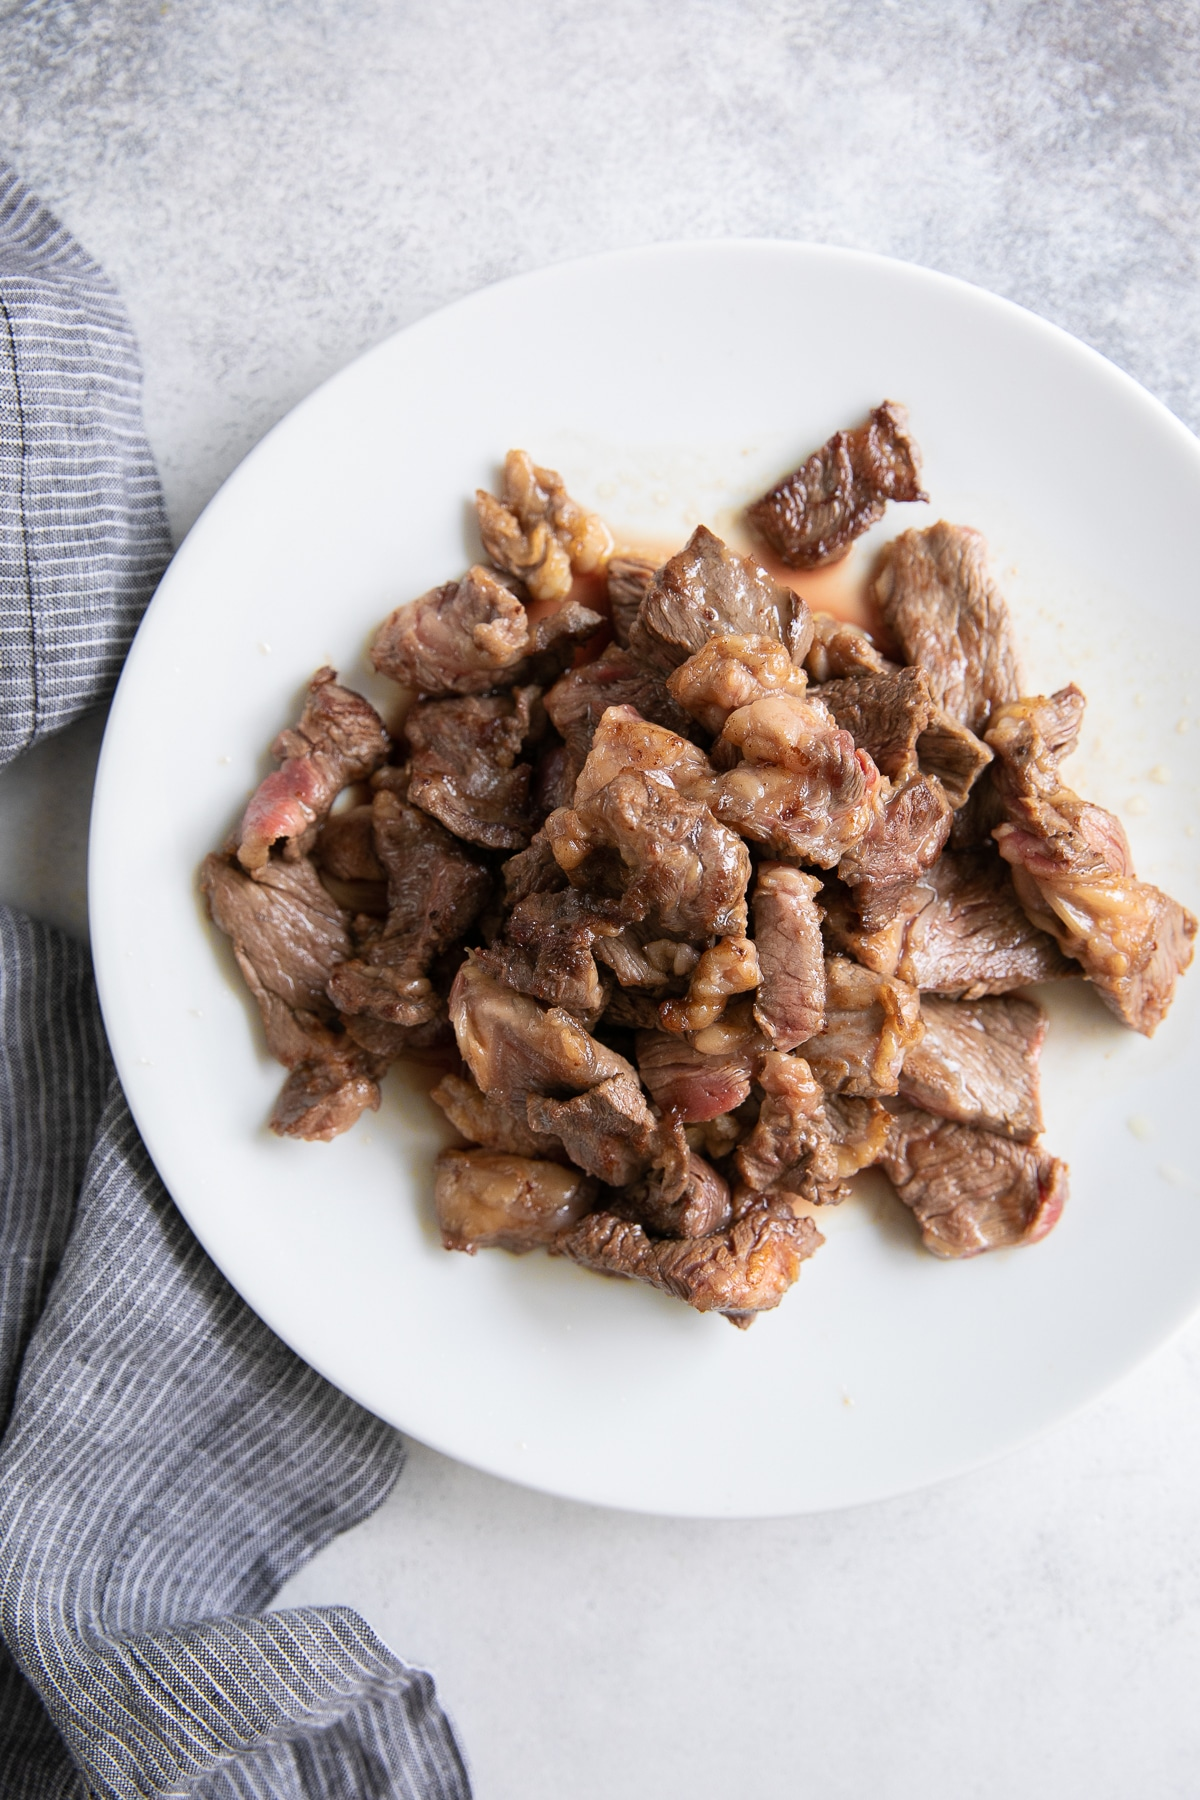 Thinly sliced pieces of cooked beef on a white plate.